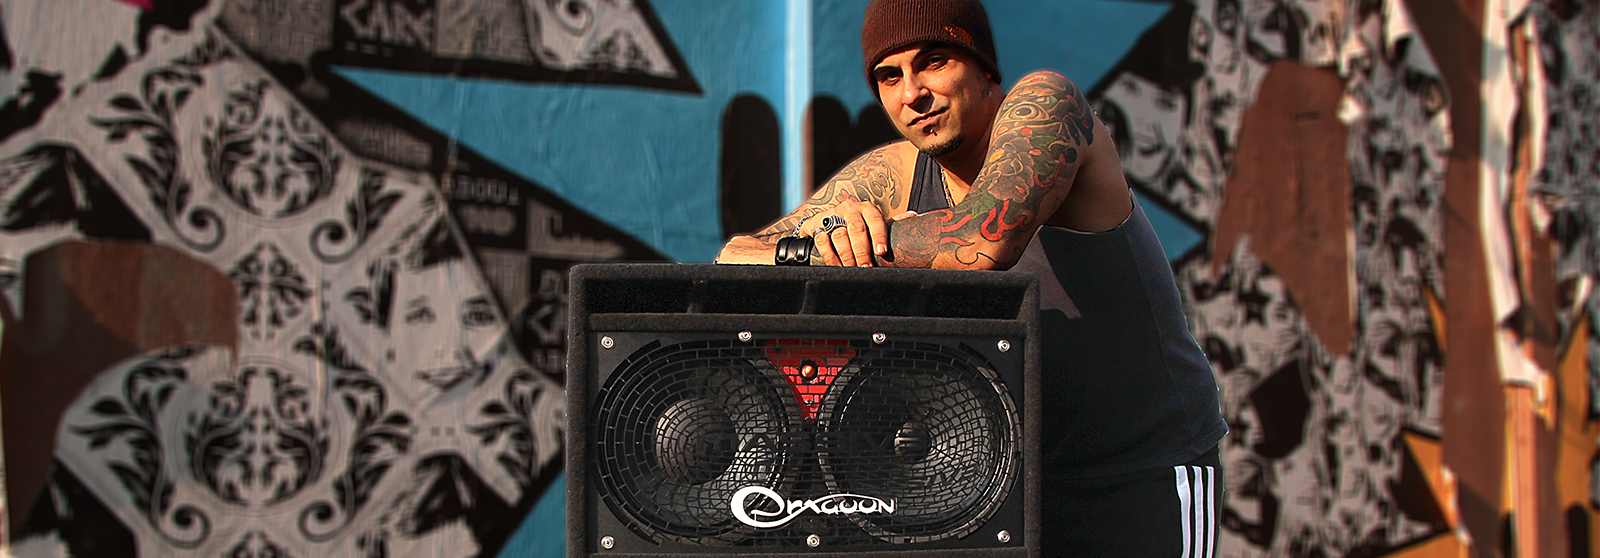 Dragoon - The Custom Speaker - DRAGOON-HANDCRAFTED-IN-FLORENCE_2016022522572129130.jpg